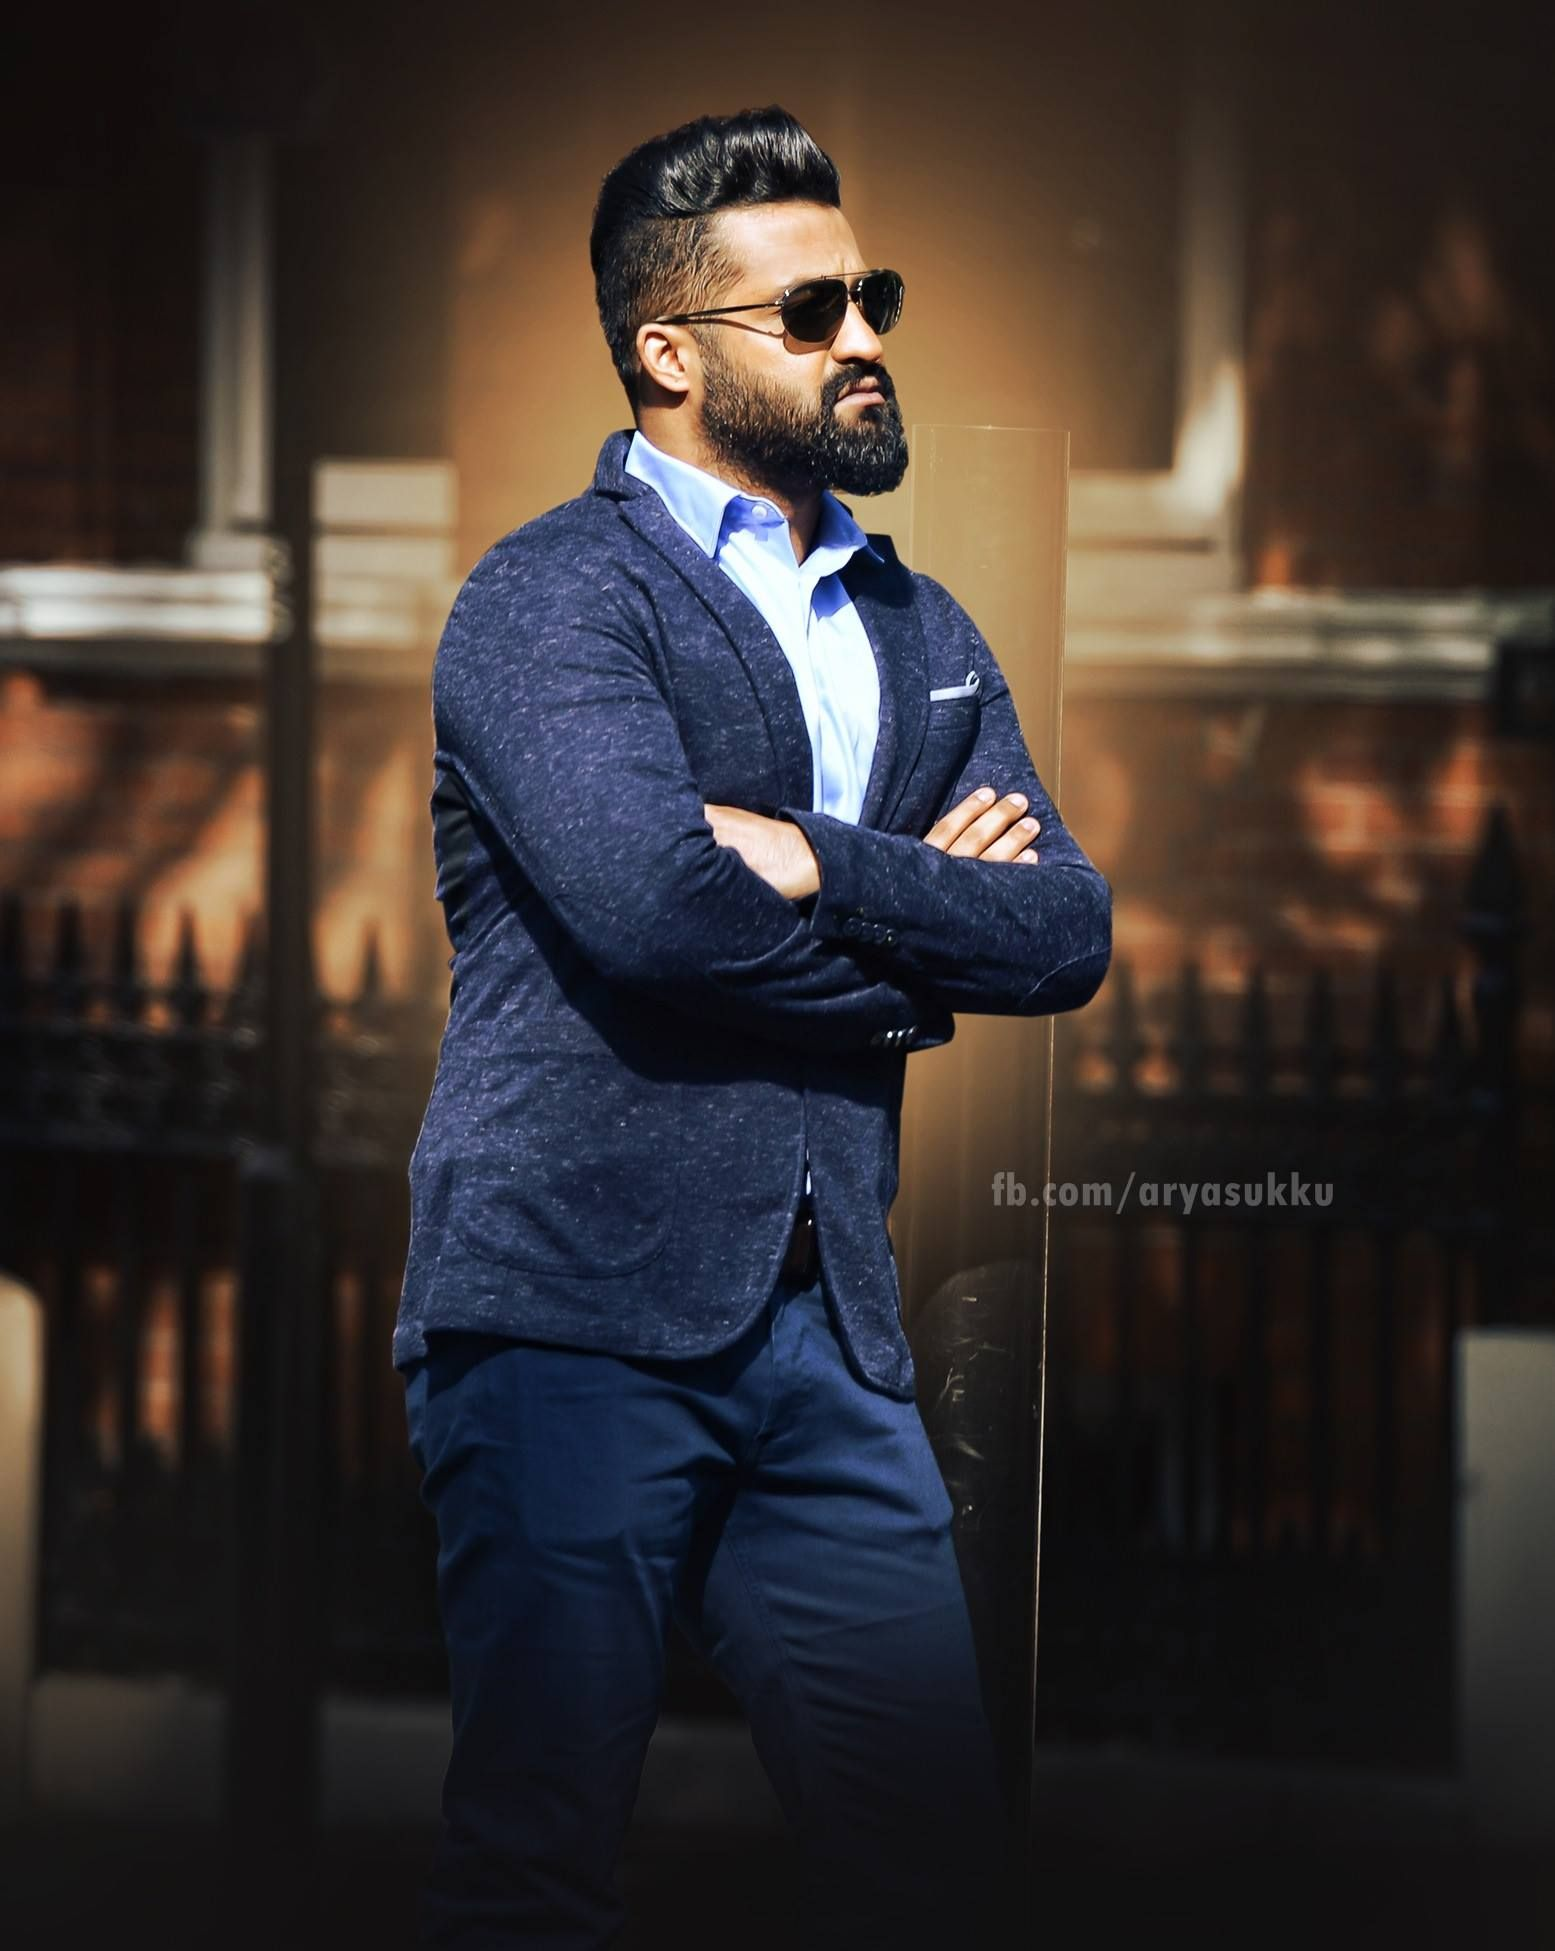 Jr Ntr Hd Wallpapers Madrid In 2019 Wallpaper Hd Wallpaper